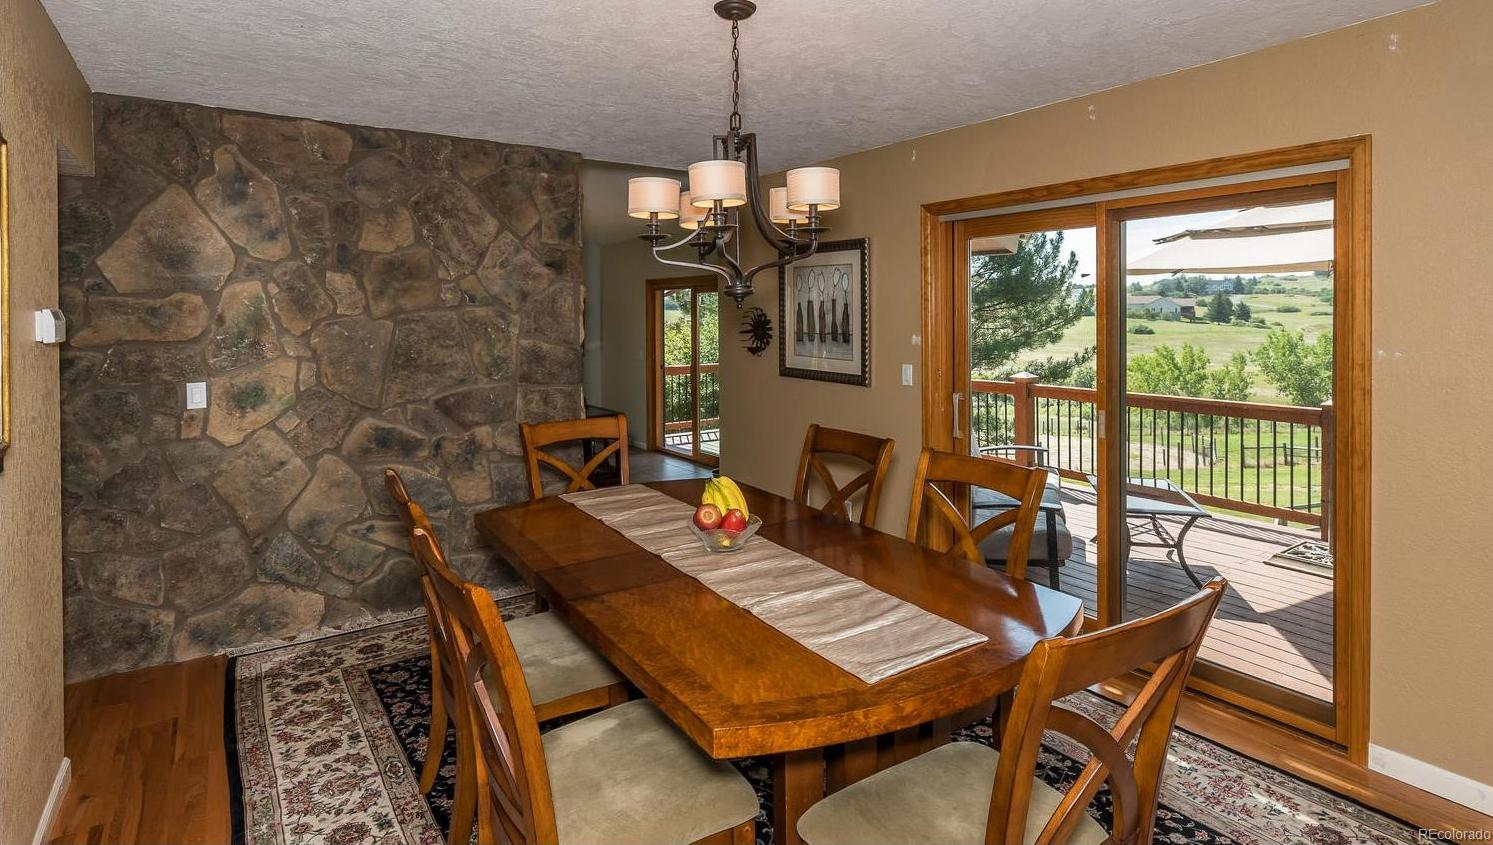 Formal Dining Room with Stone Wall and Wide Plank Floors